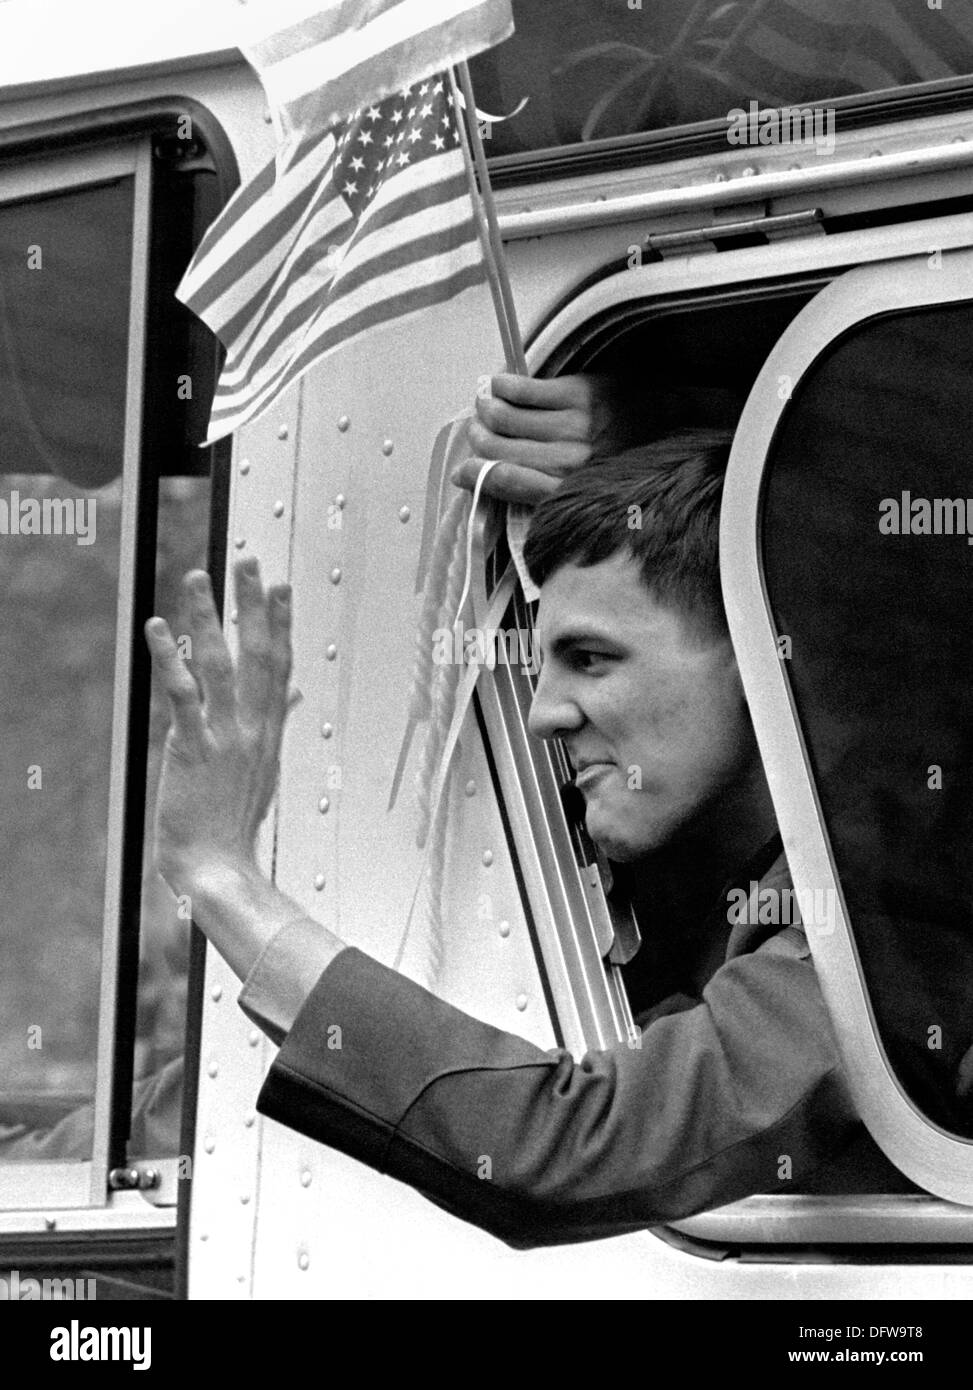 A former American hostage held by Iran waves from a buses during a welcome home parade along Pennsylvania Avenue January 27, 1981 in Washington, DC. Fifty-two Americans were held hostage for 444 days after a group of Iranian students supporting the Iranian Revolution took over the US Embassy in Tehran. - Stock Image